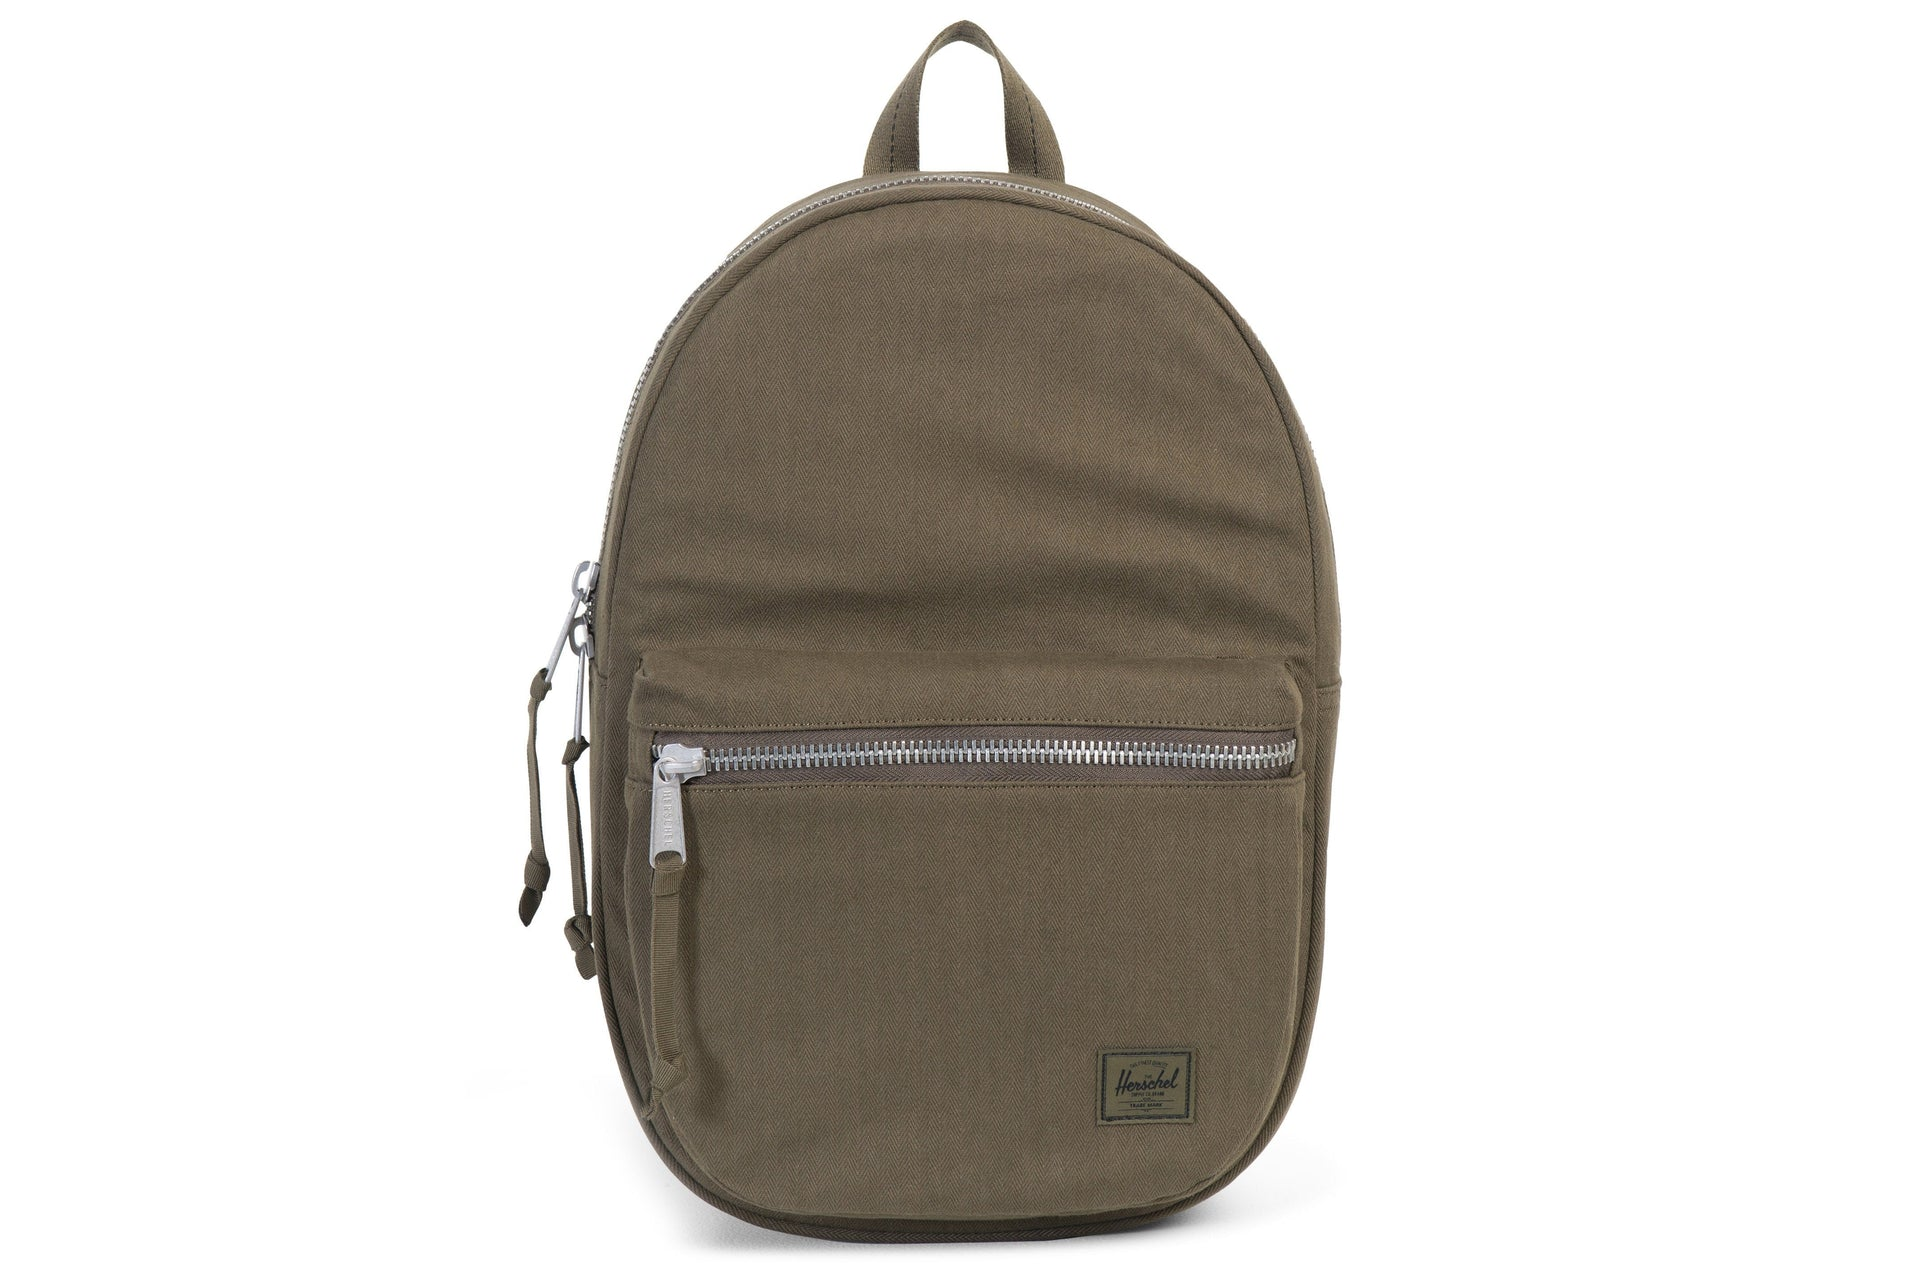 LAWSON COTTON TWILL BAGS HERSCHEL ARMY SURPLUS ONE SIZE